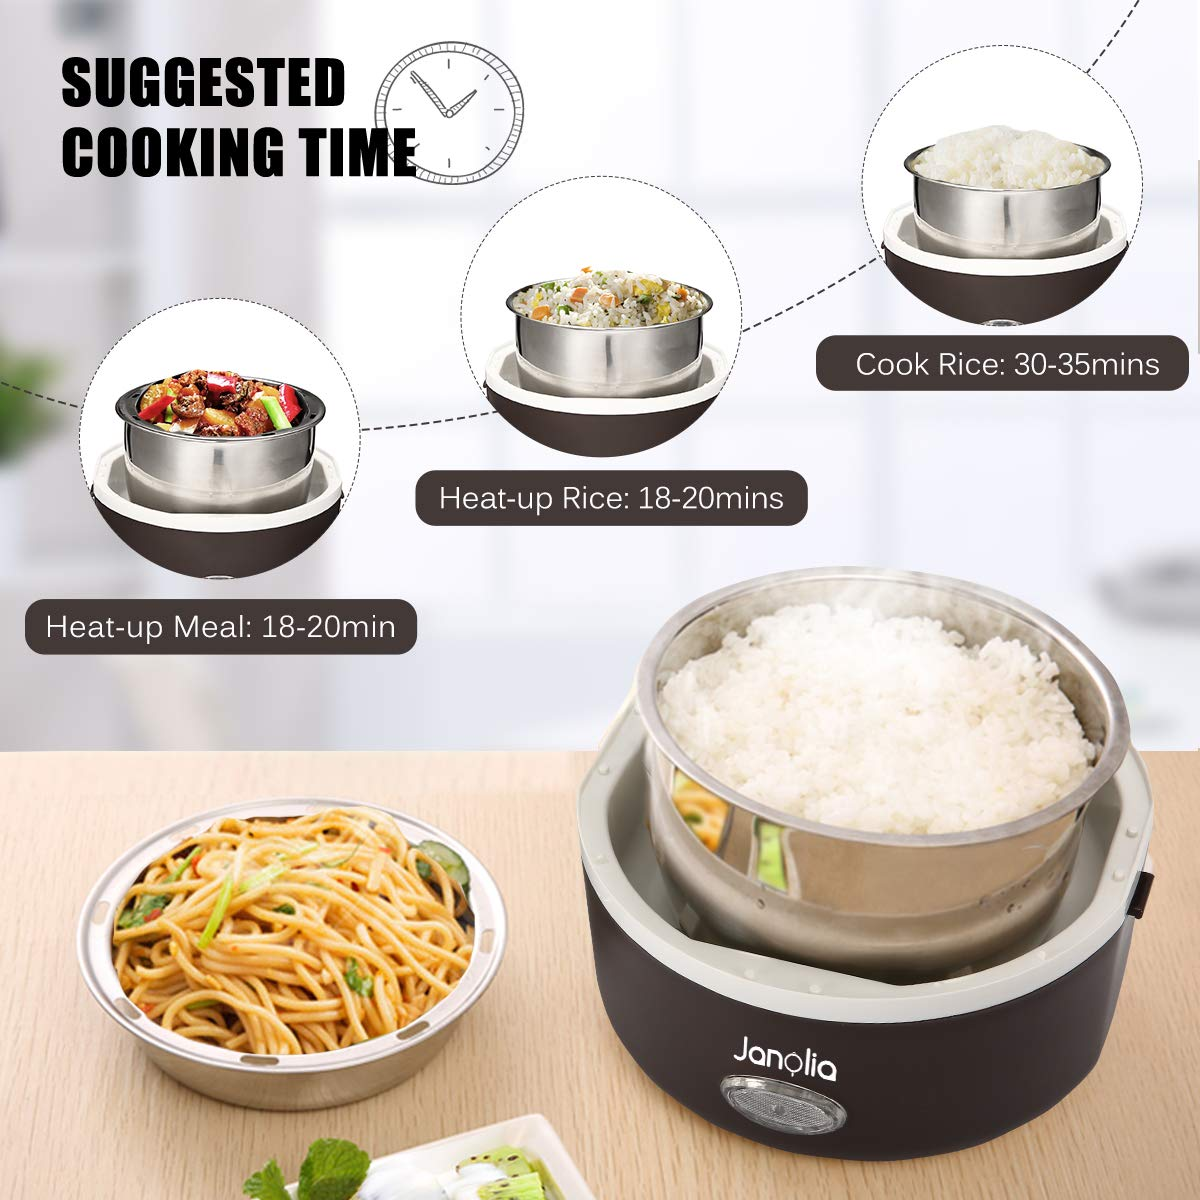 Janolia Electric Food Steamer, Portable Lunch Box Steamer with Stainless Steel Bowls, Measuring Cup by Janolia (Image #6)